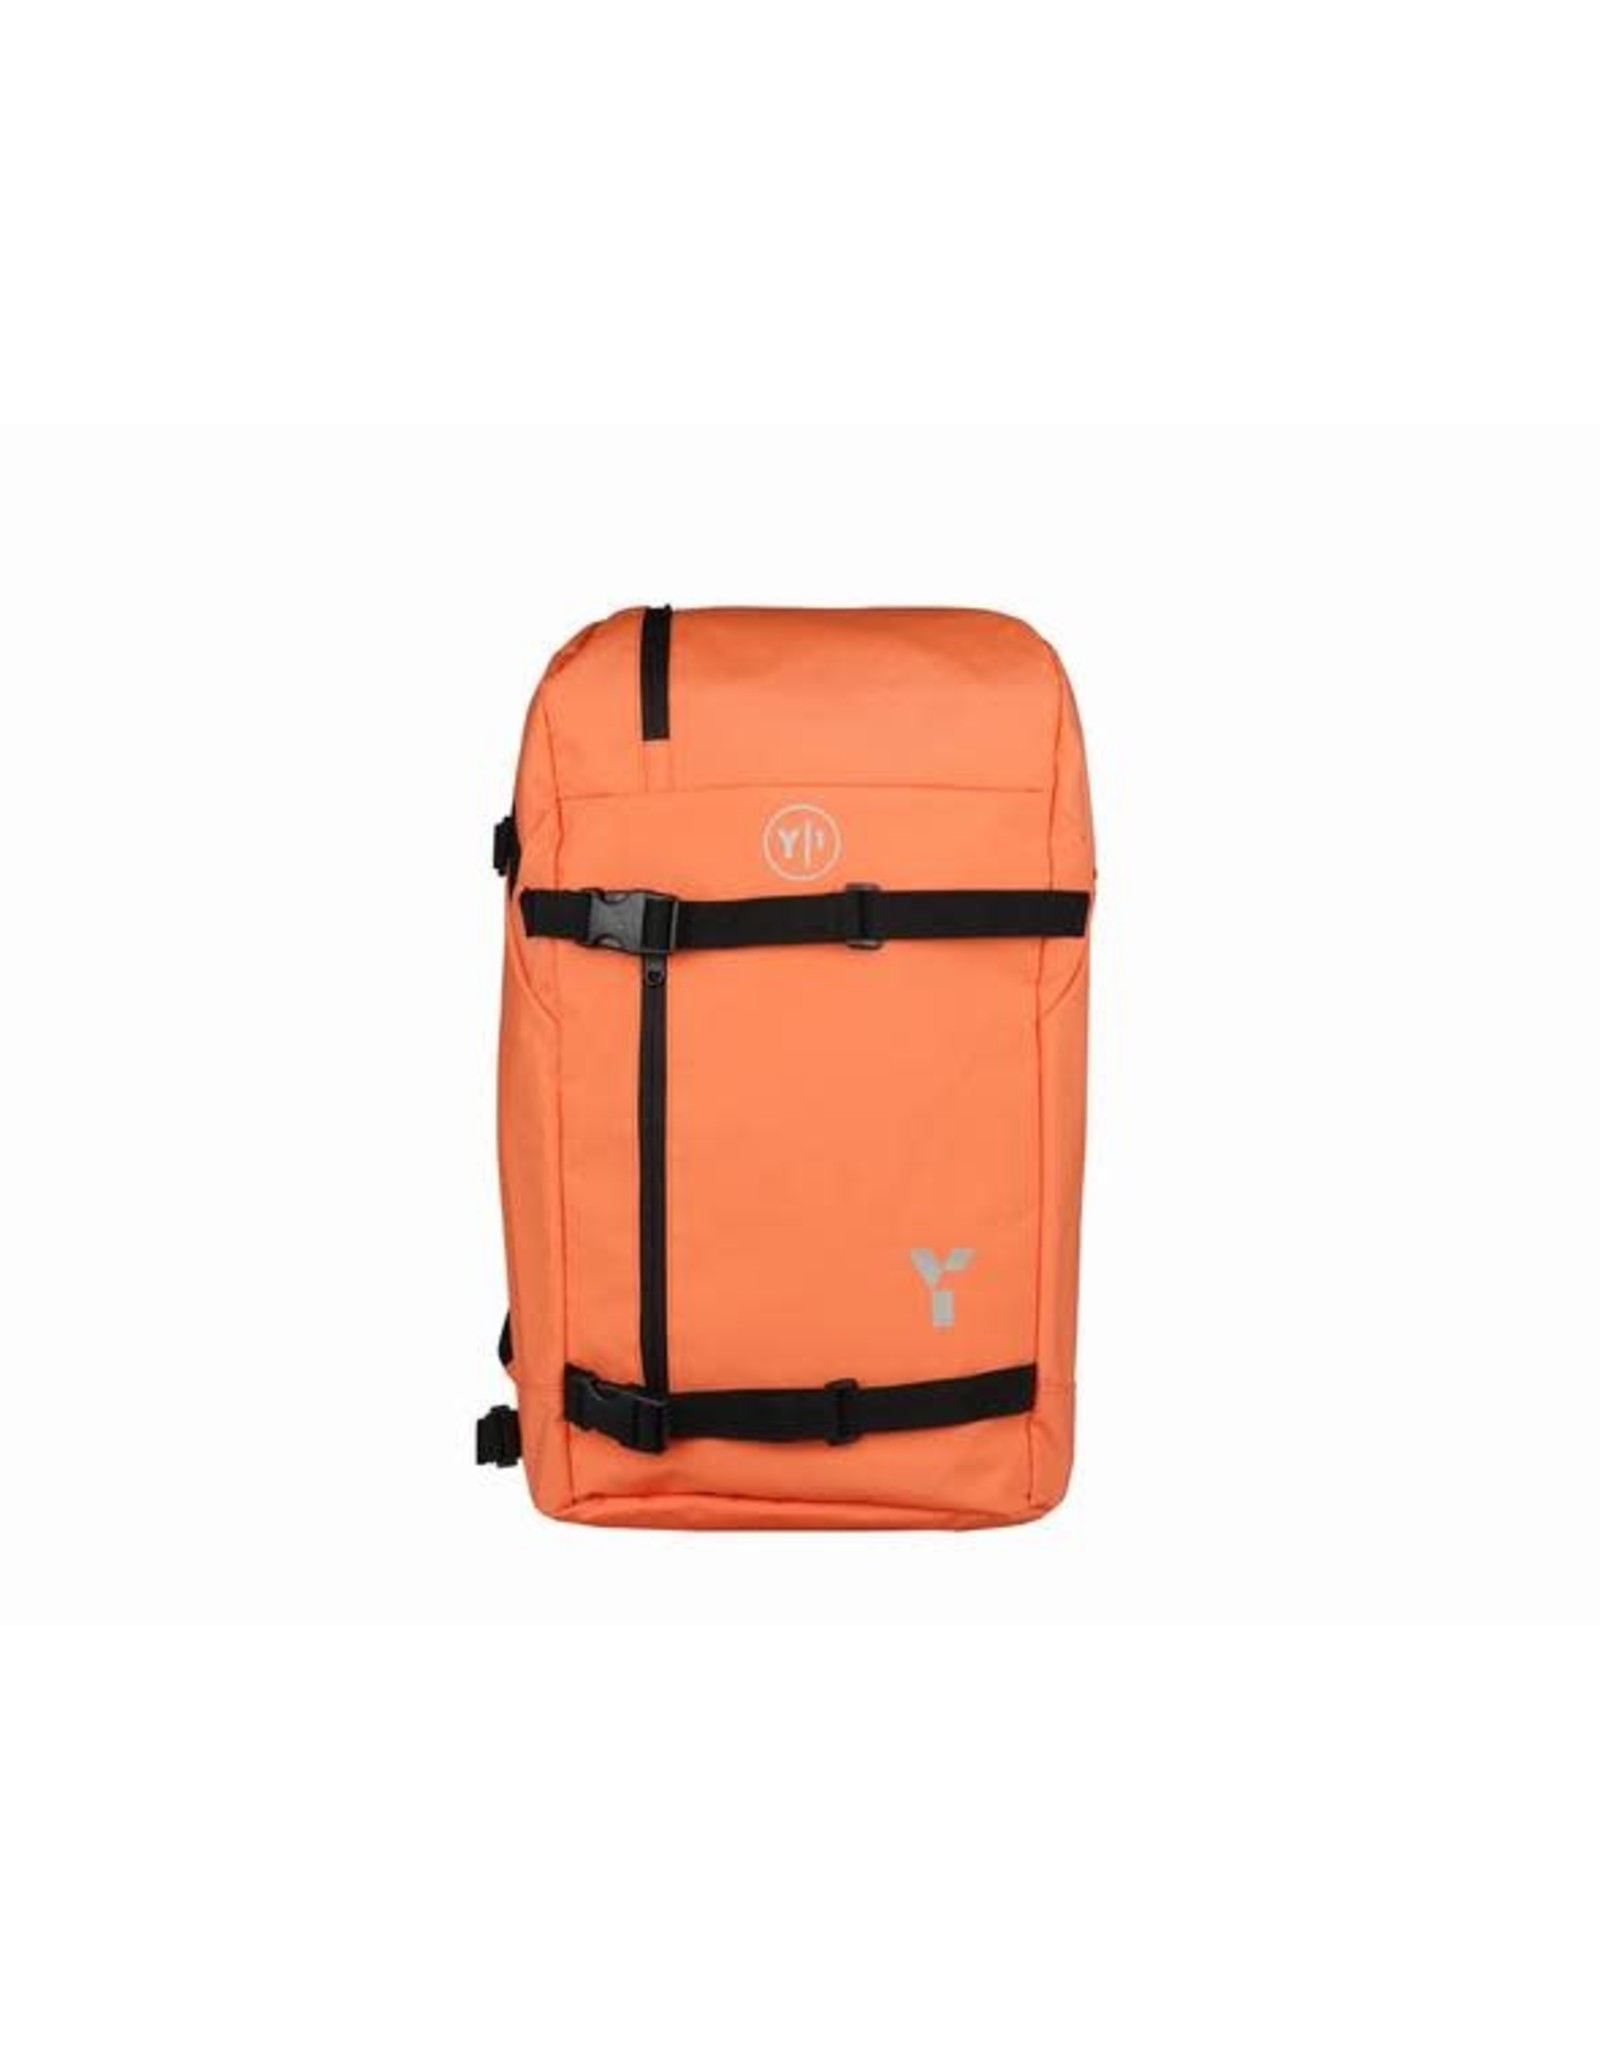 Y1 Y1 RANGER BACKPACK 20-21 57CON